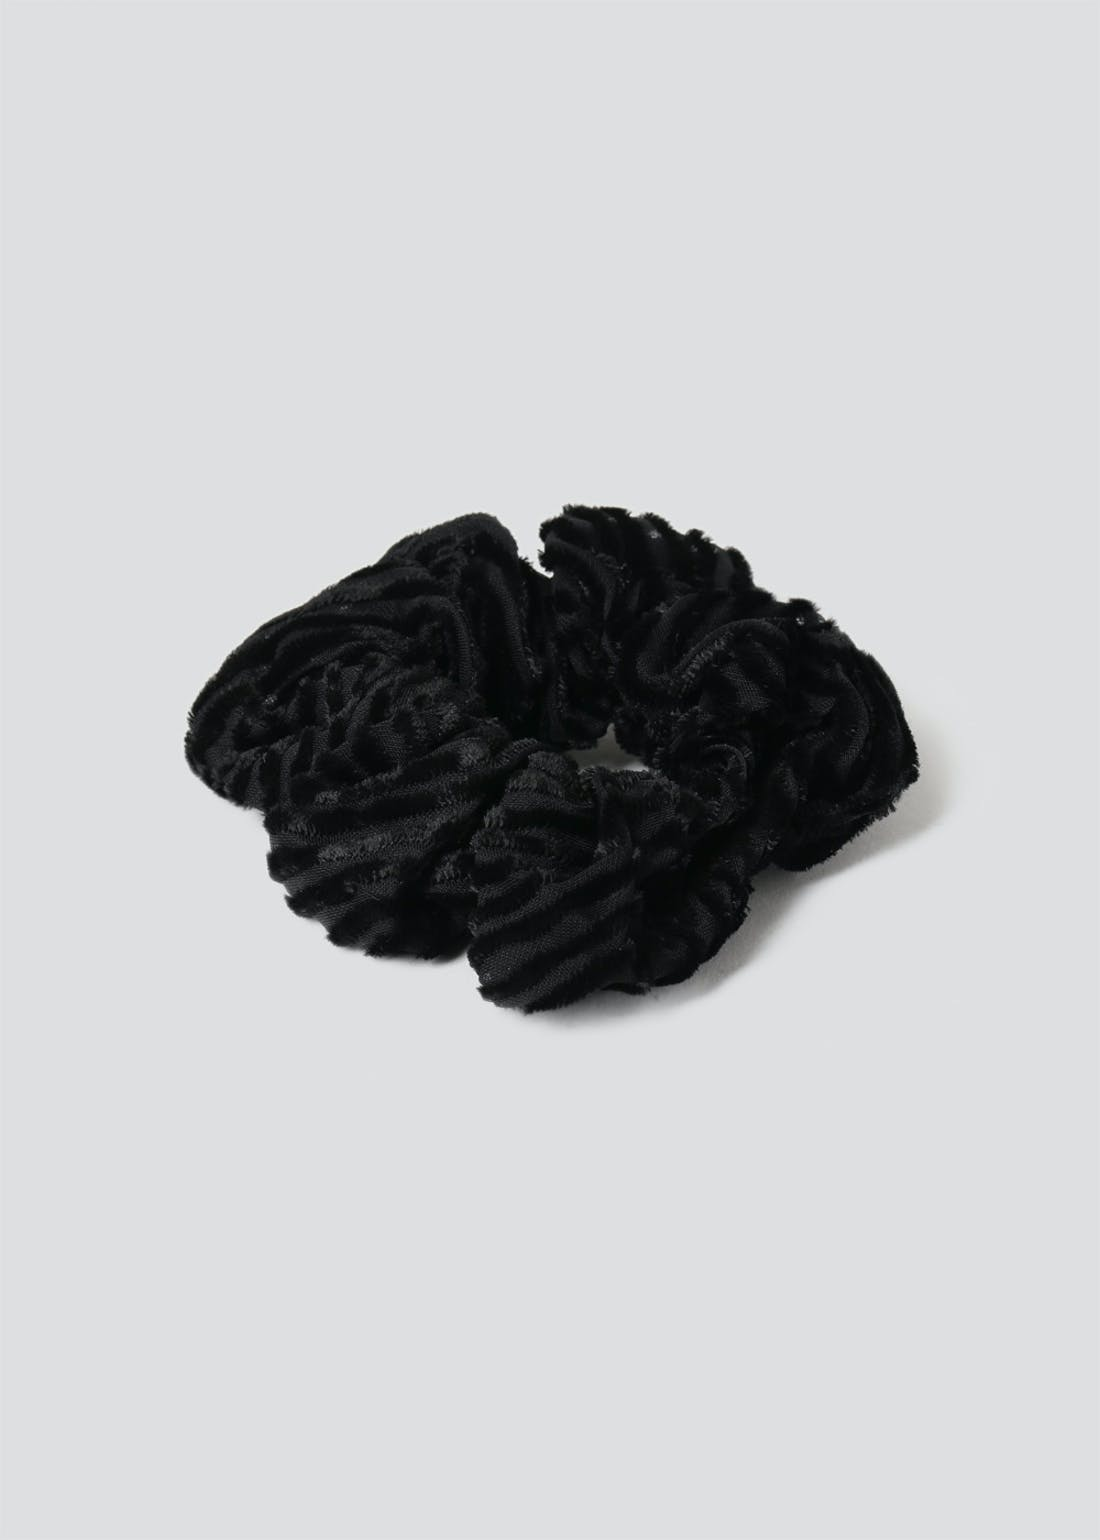 Textured Scrunchie.